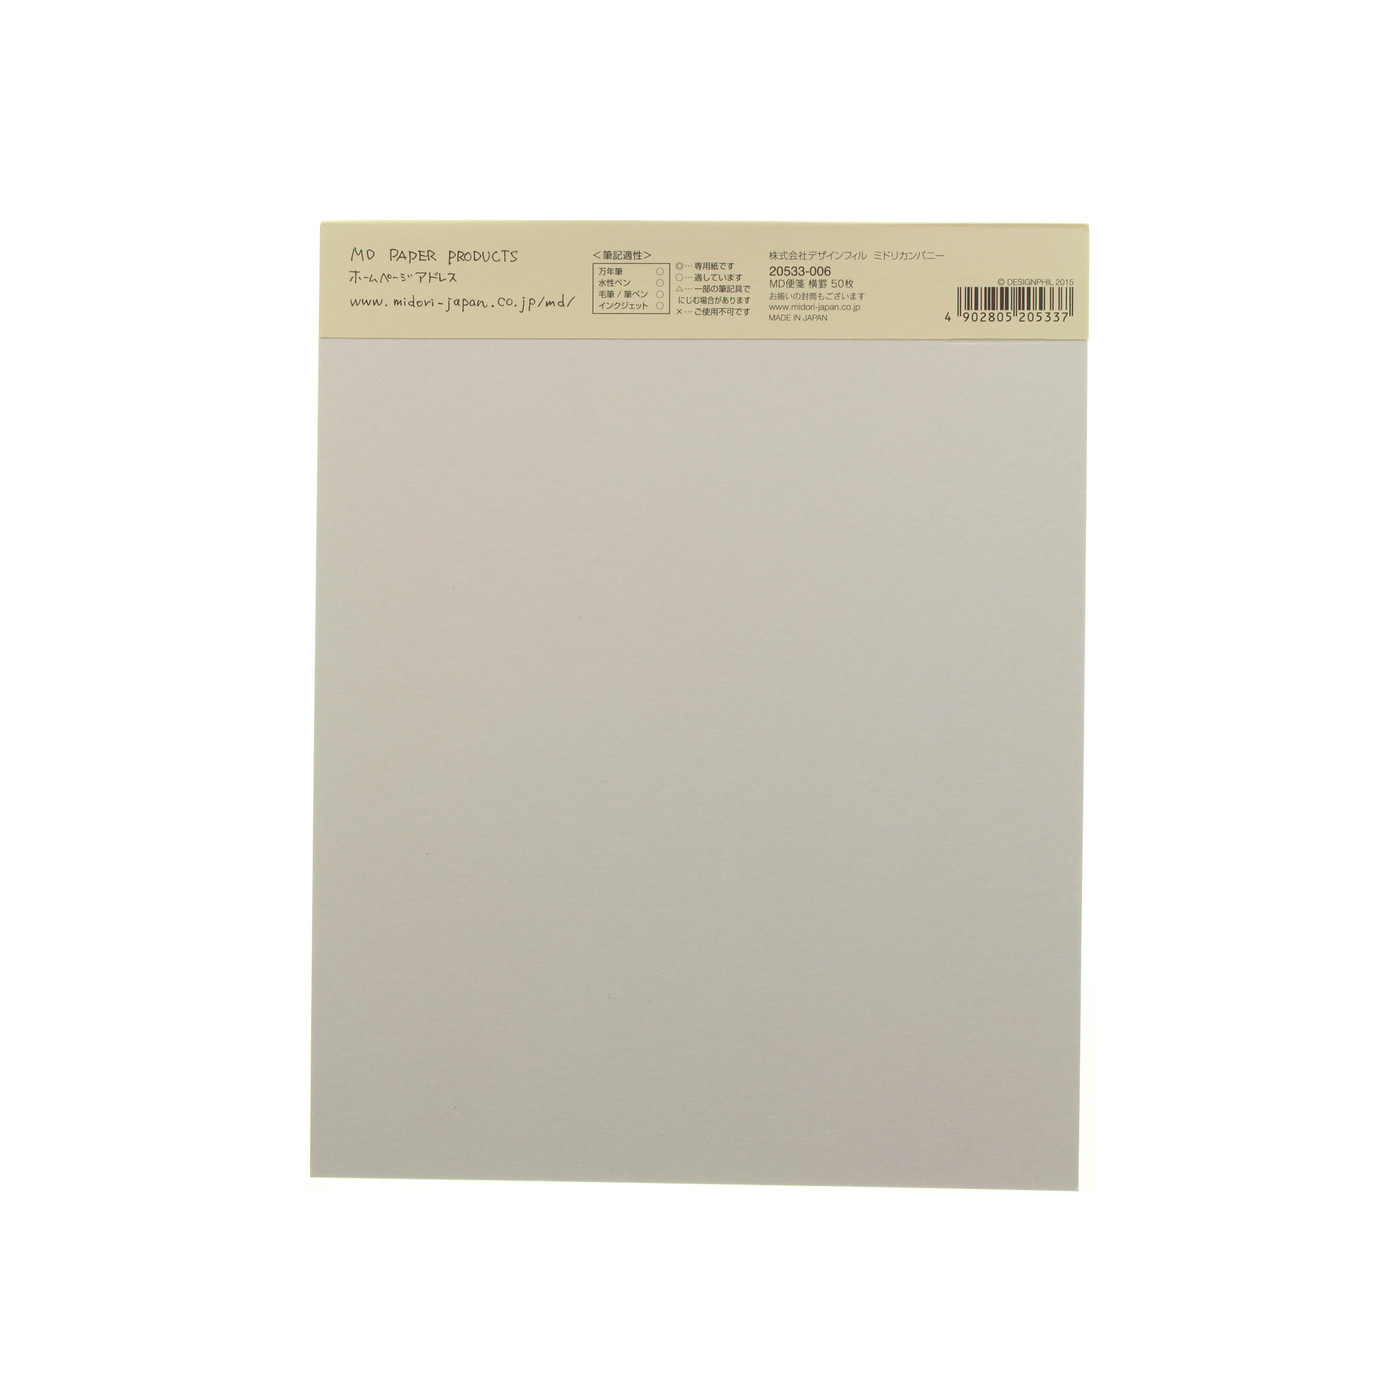 MD Paper letter pad